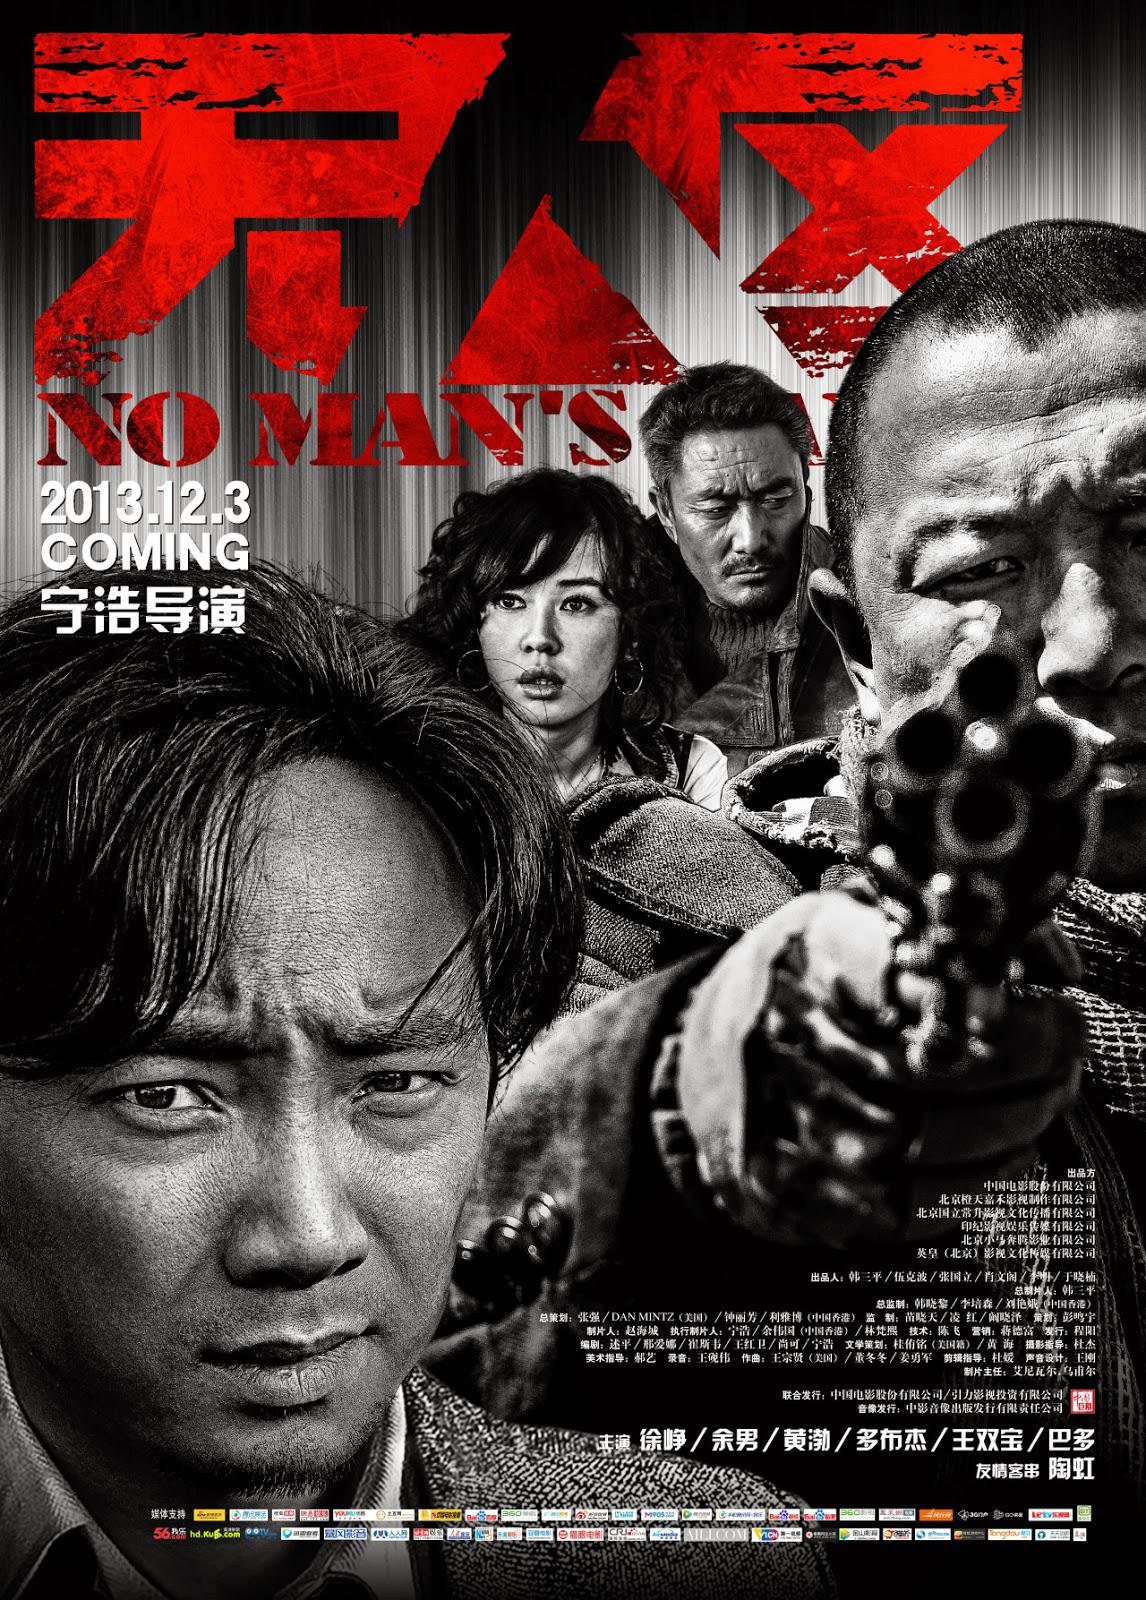 No man's land 2013 Vostfr